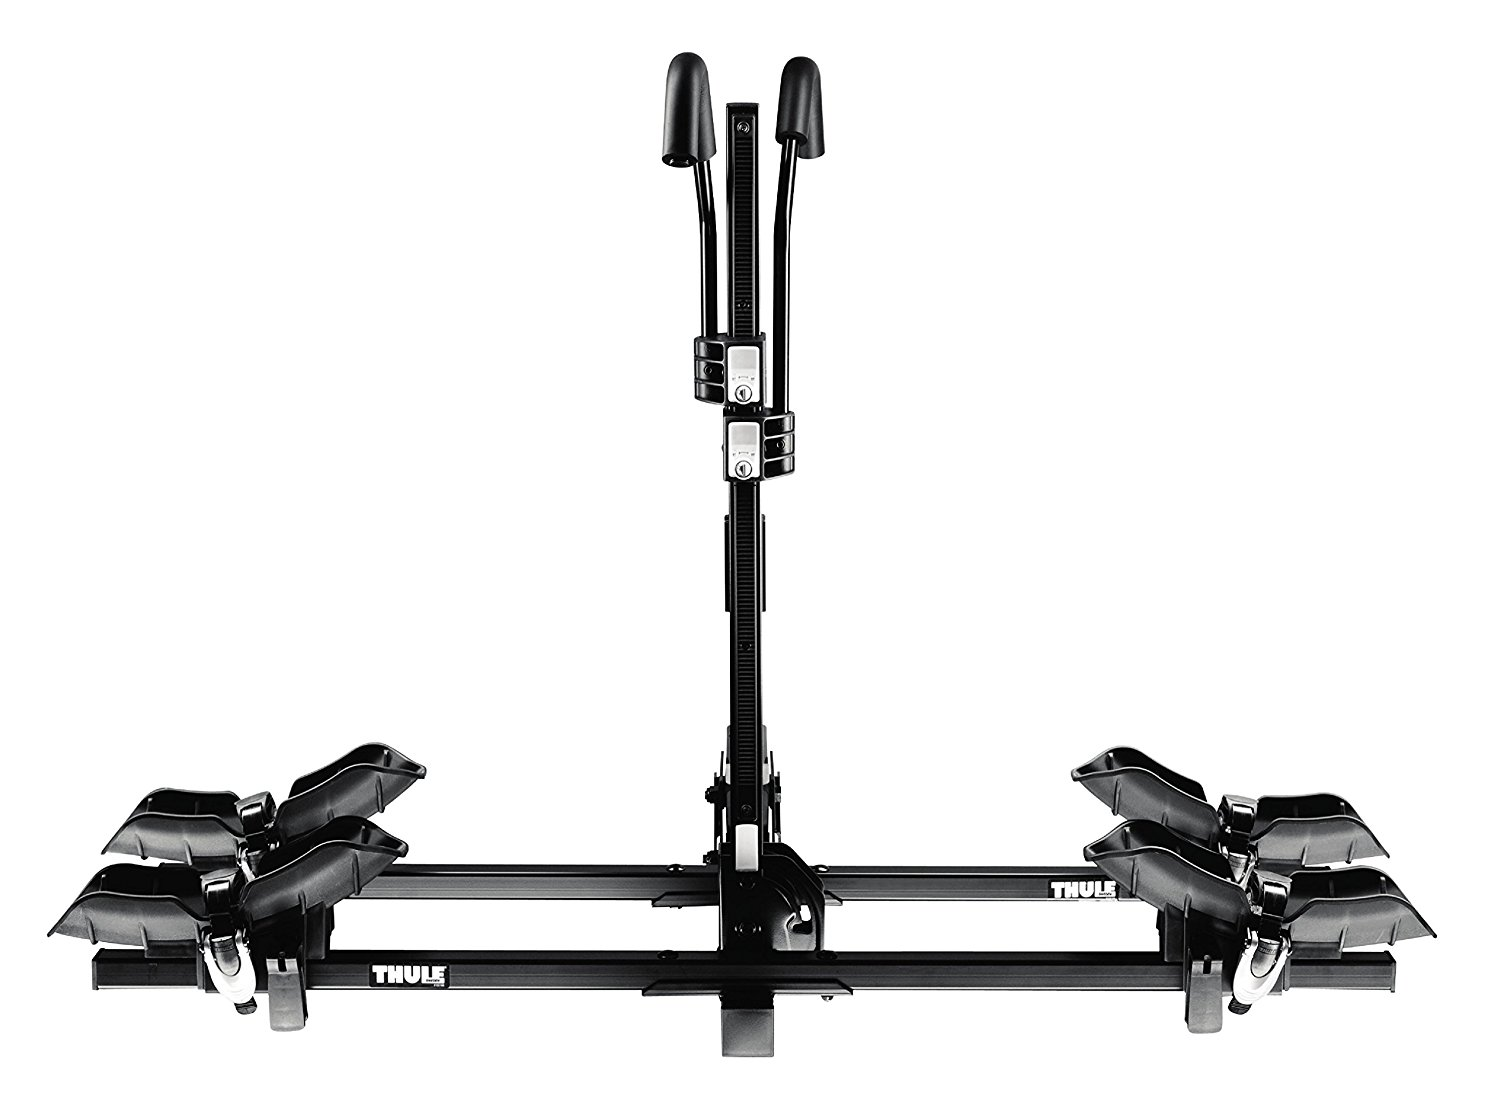 Thule Doubletrack Platform Bike Hitch Rack for 2 Bikes